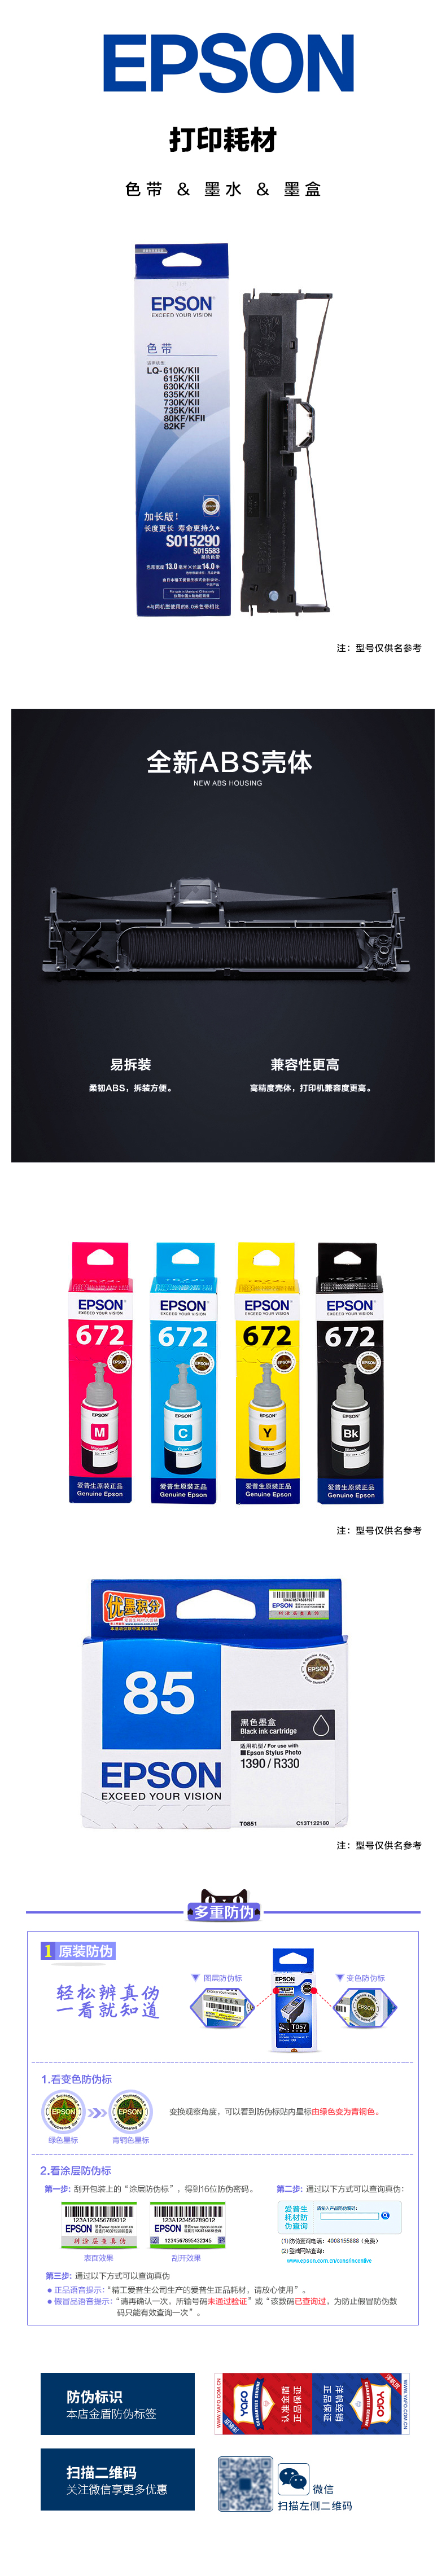 epson詳情頁-pc.png